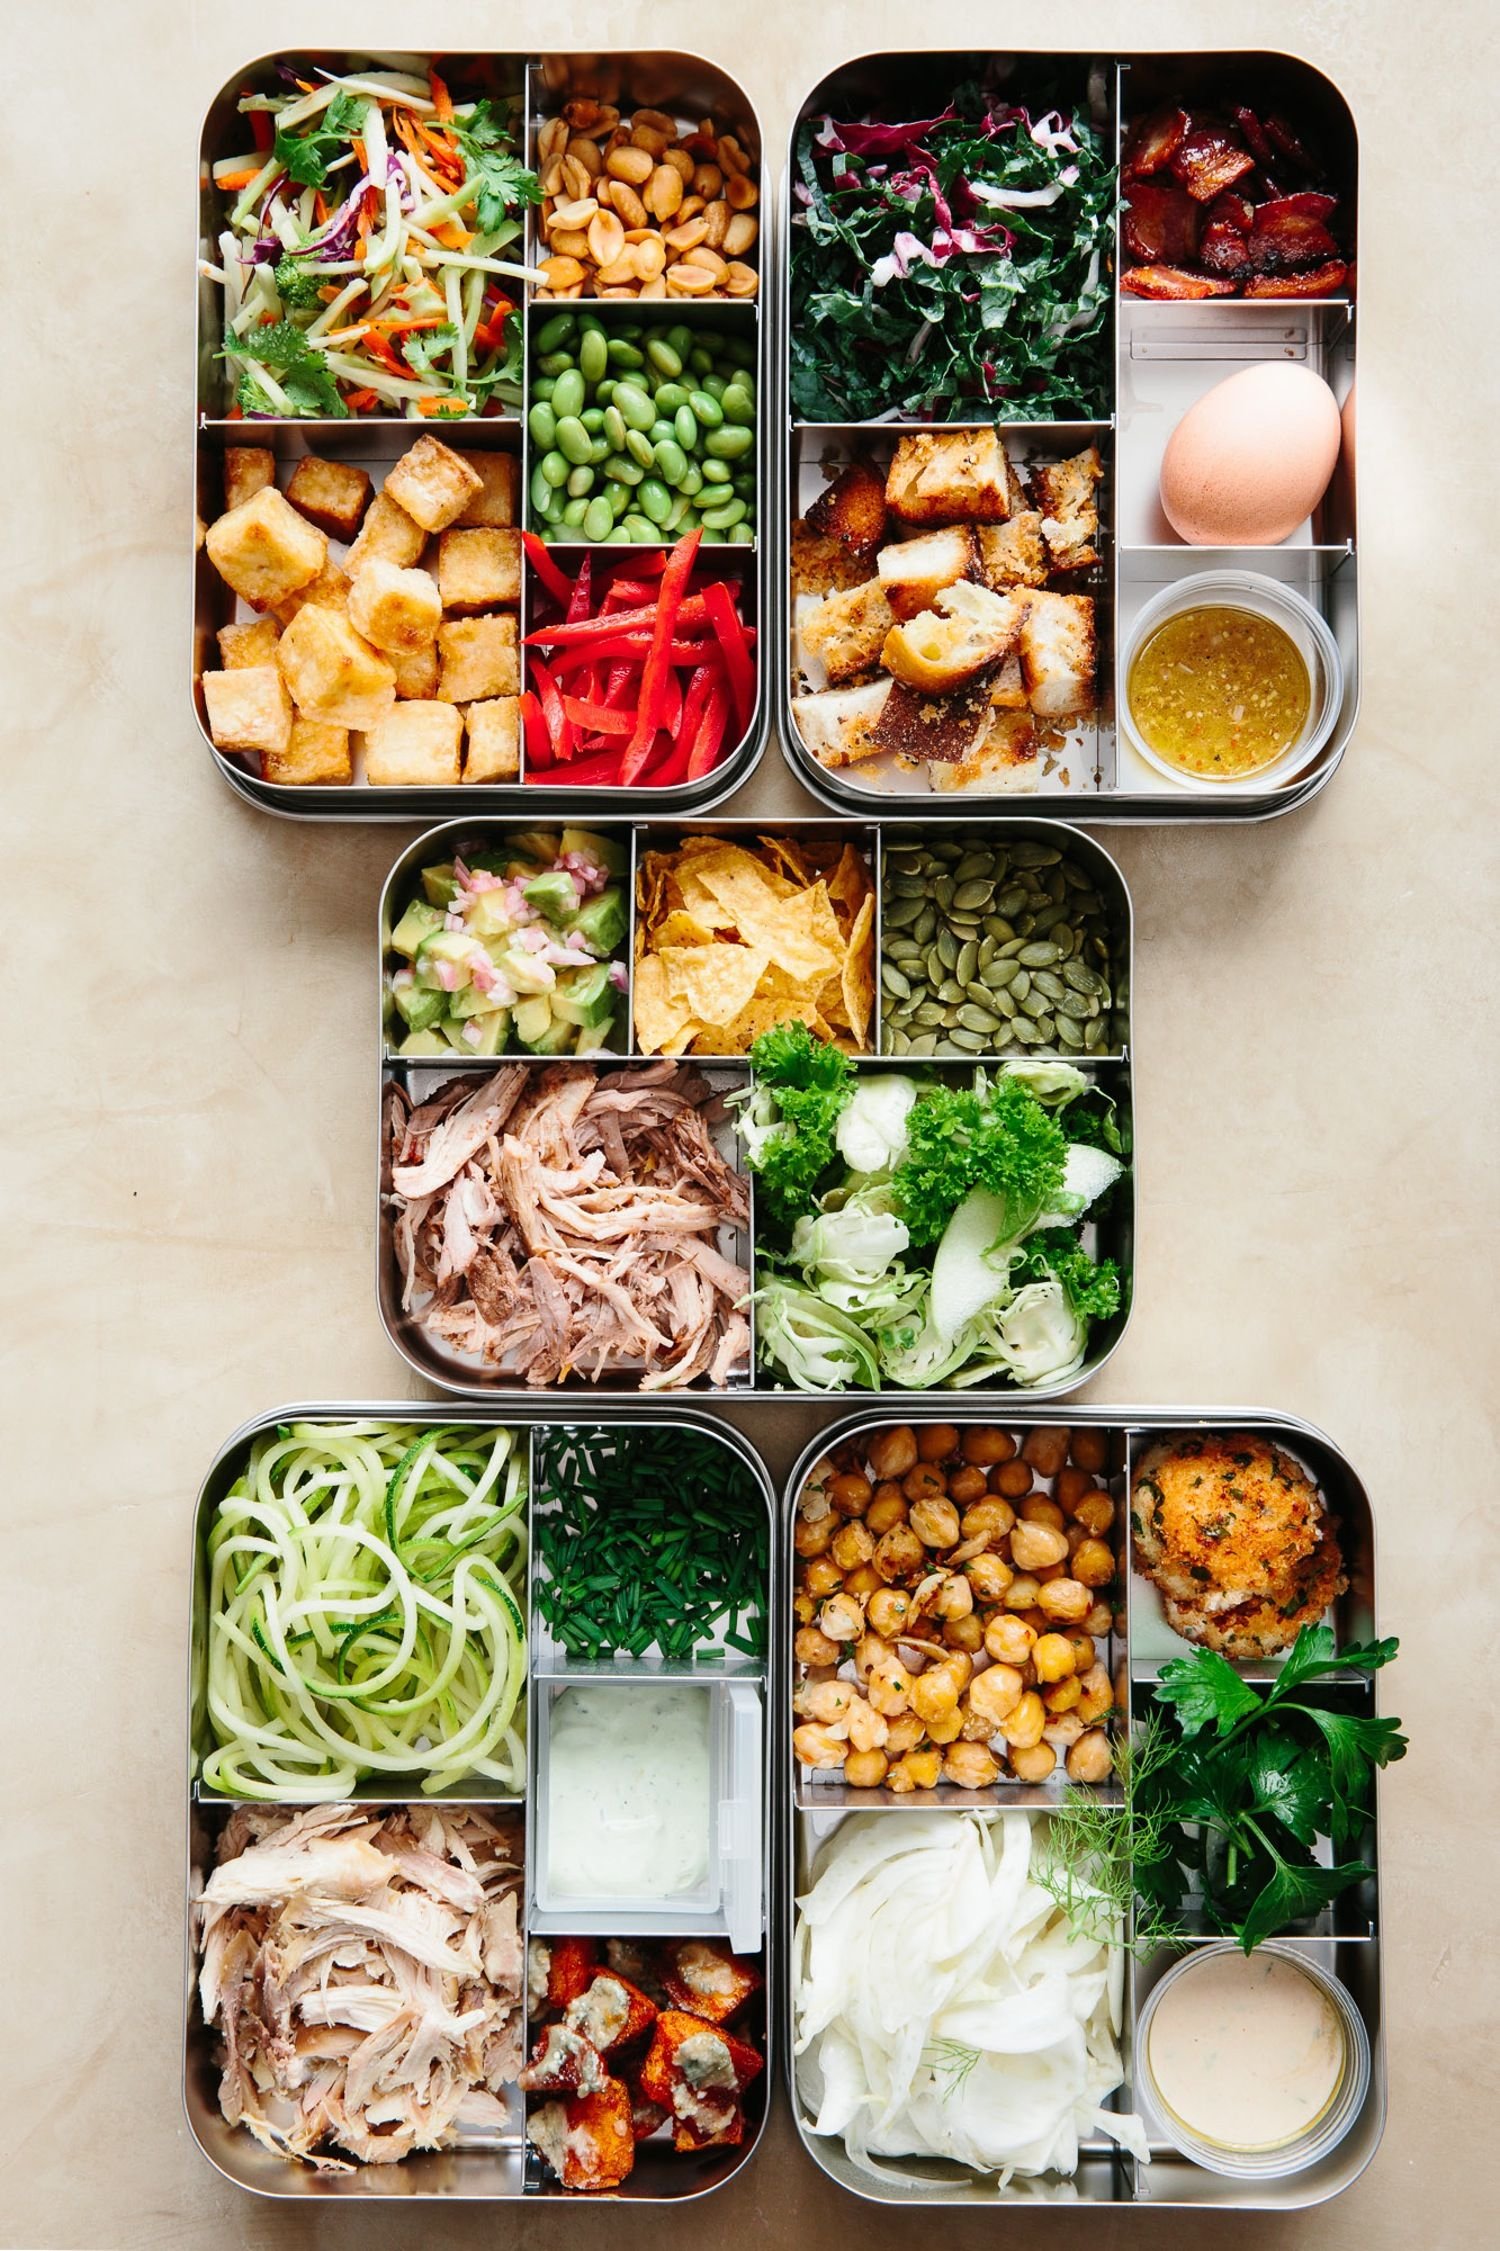 Make Ahead Freezer Meals Recipes – One Whole Month of Homemade Meals With No Repeats!